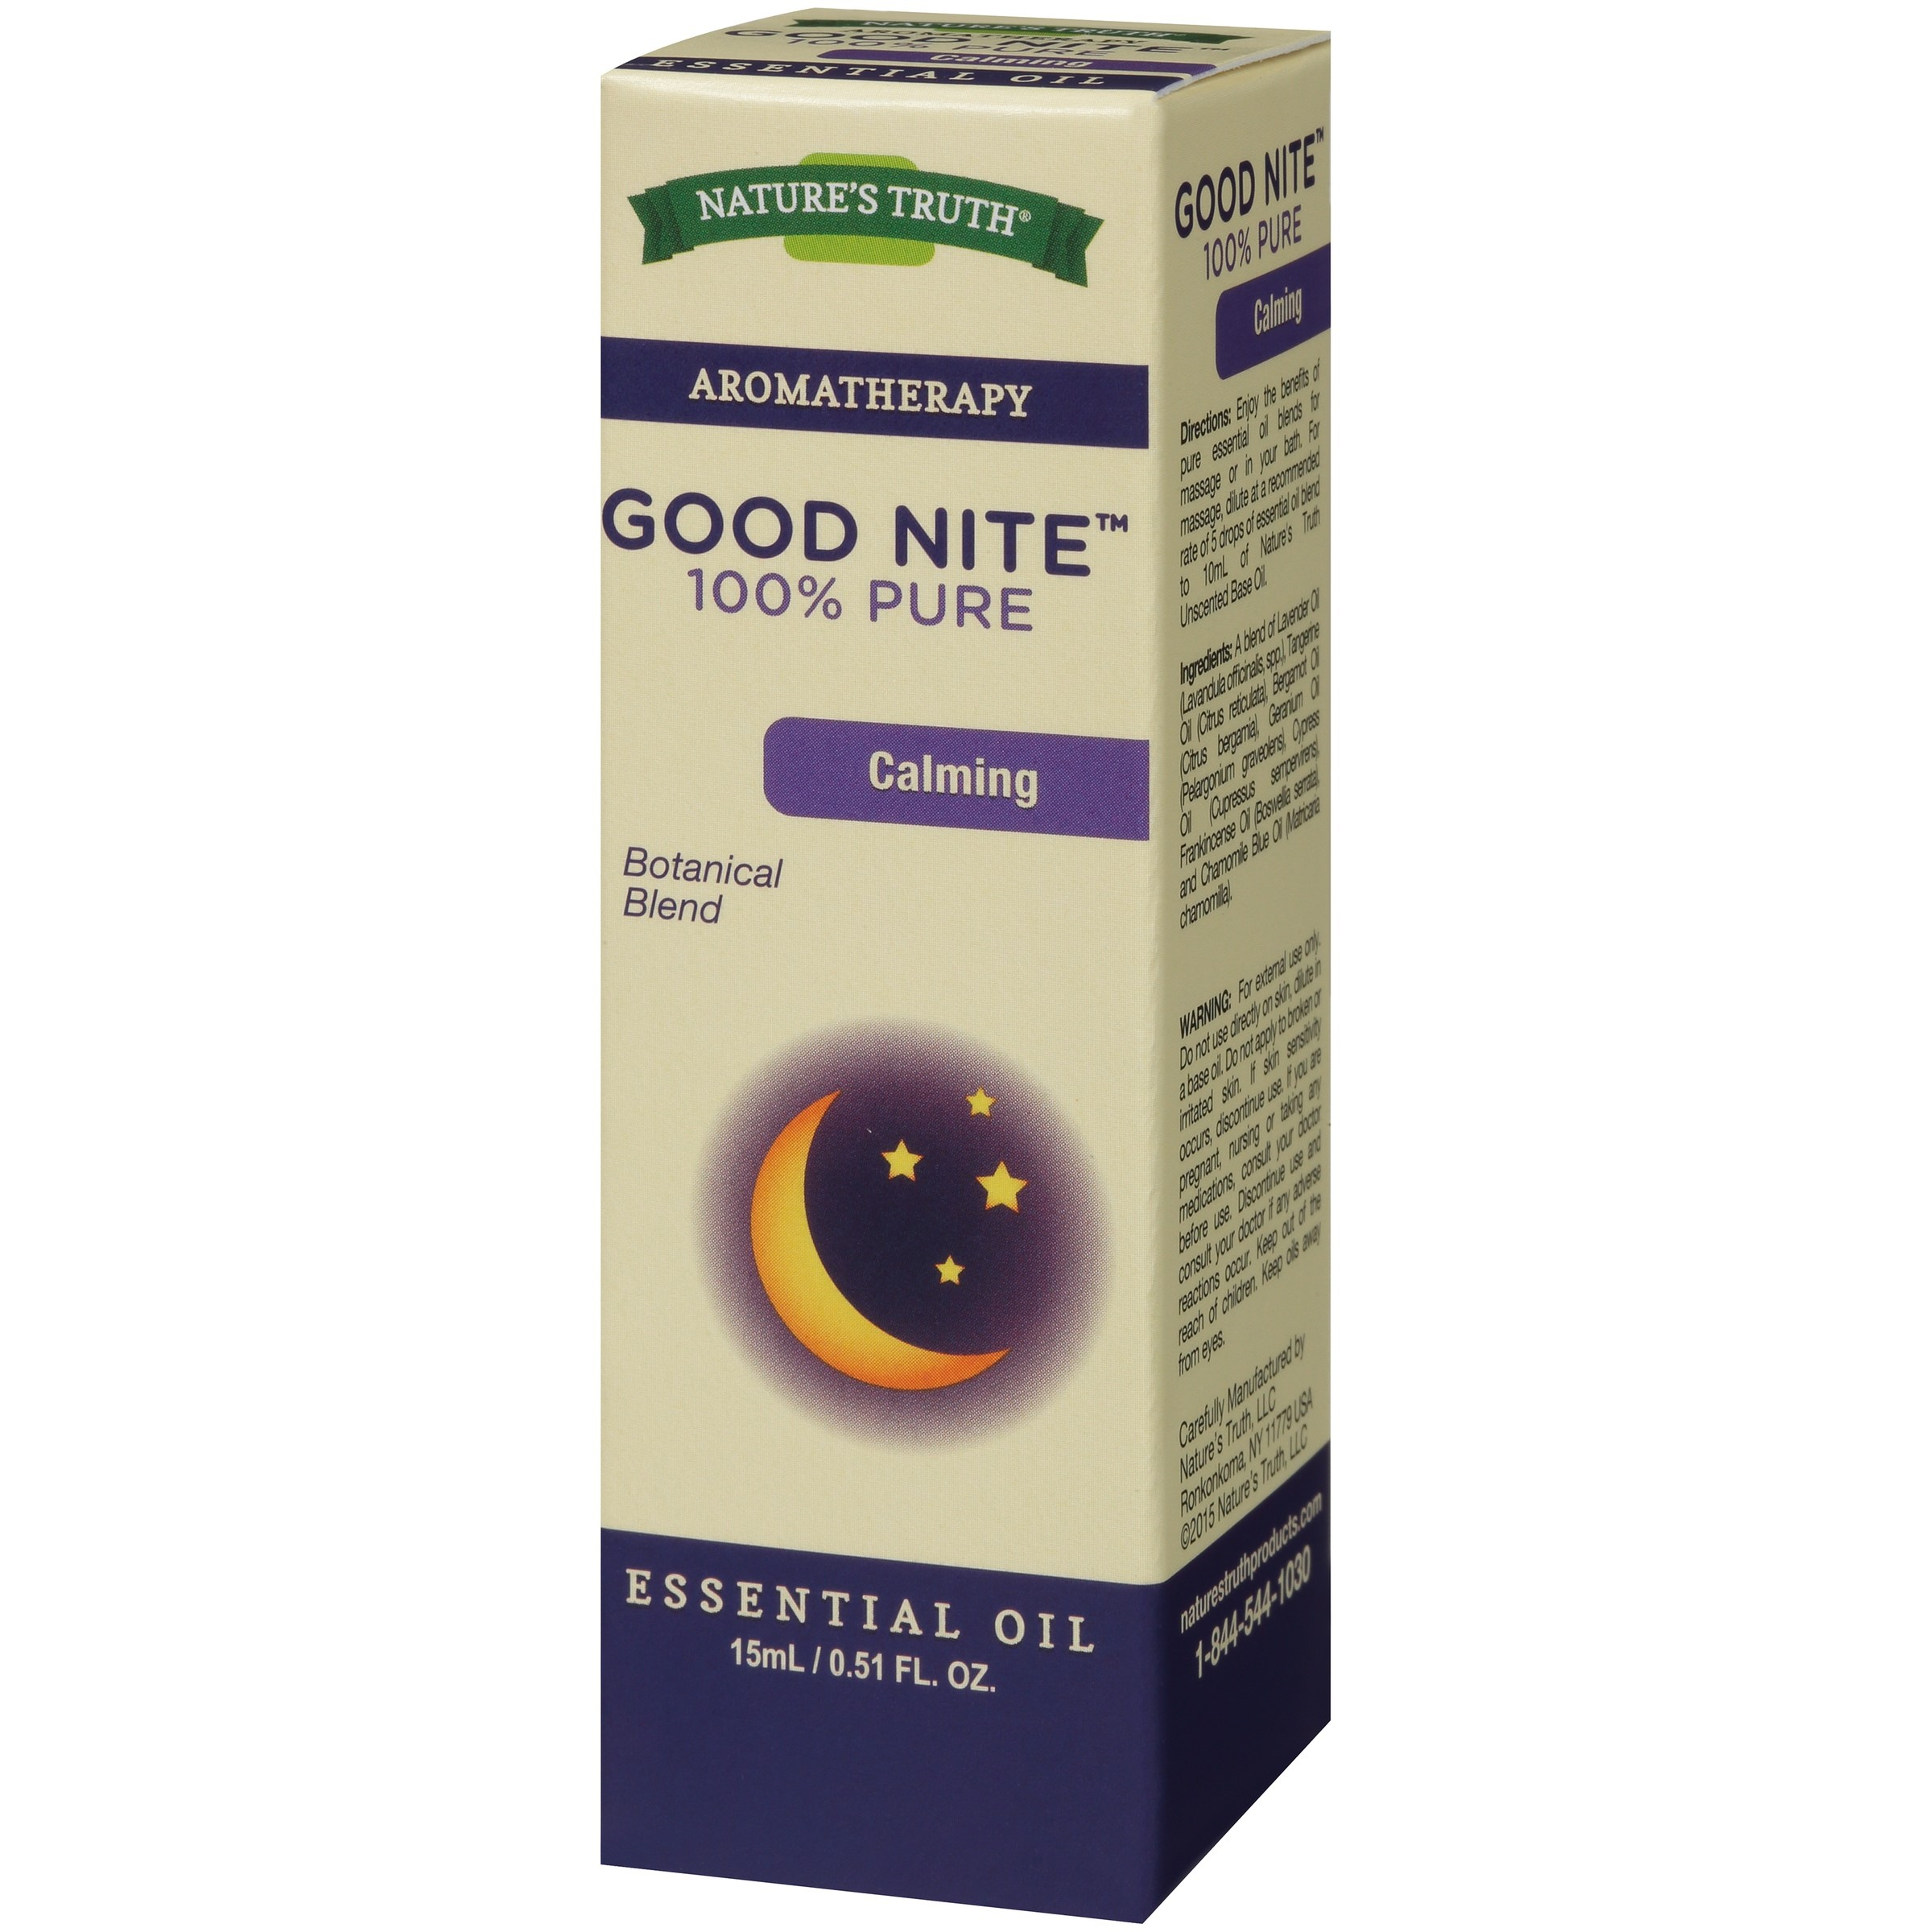 Nature's Truth Aromatherapy Good Nite Essential Oil Blend, 0.51 Fl Oz